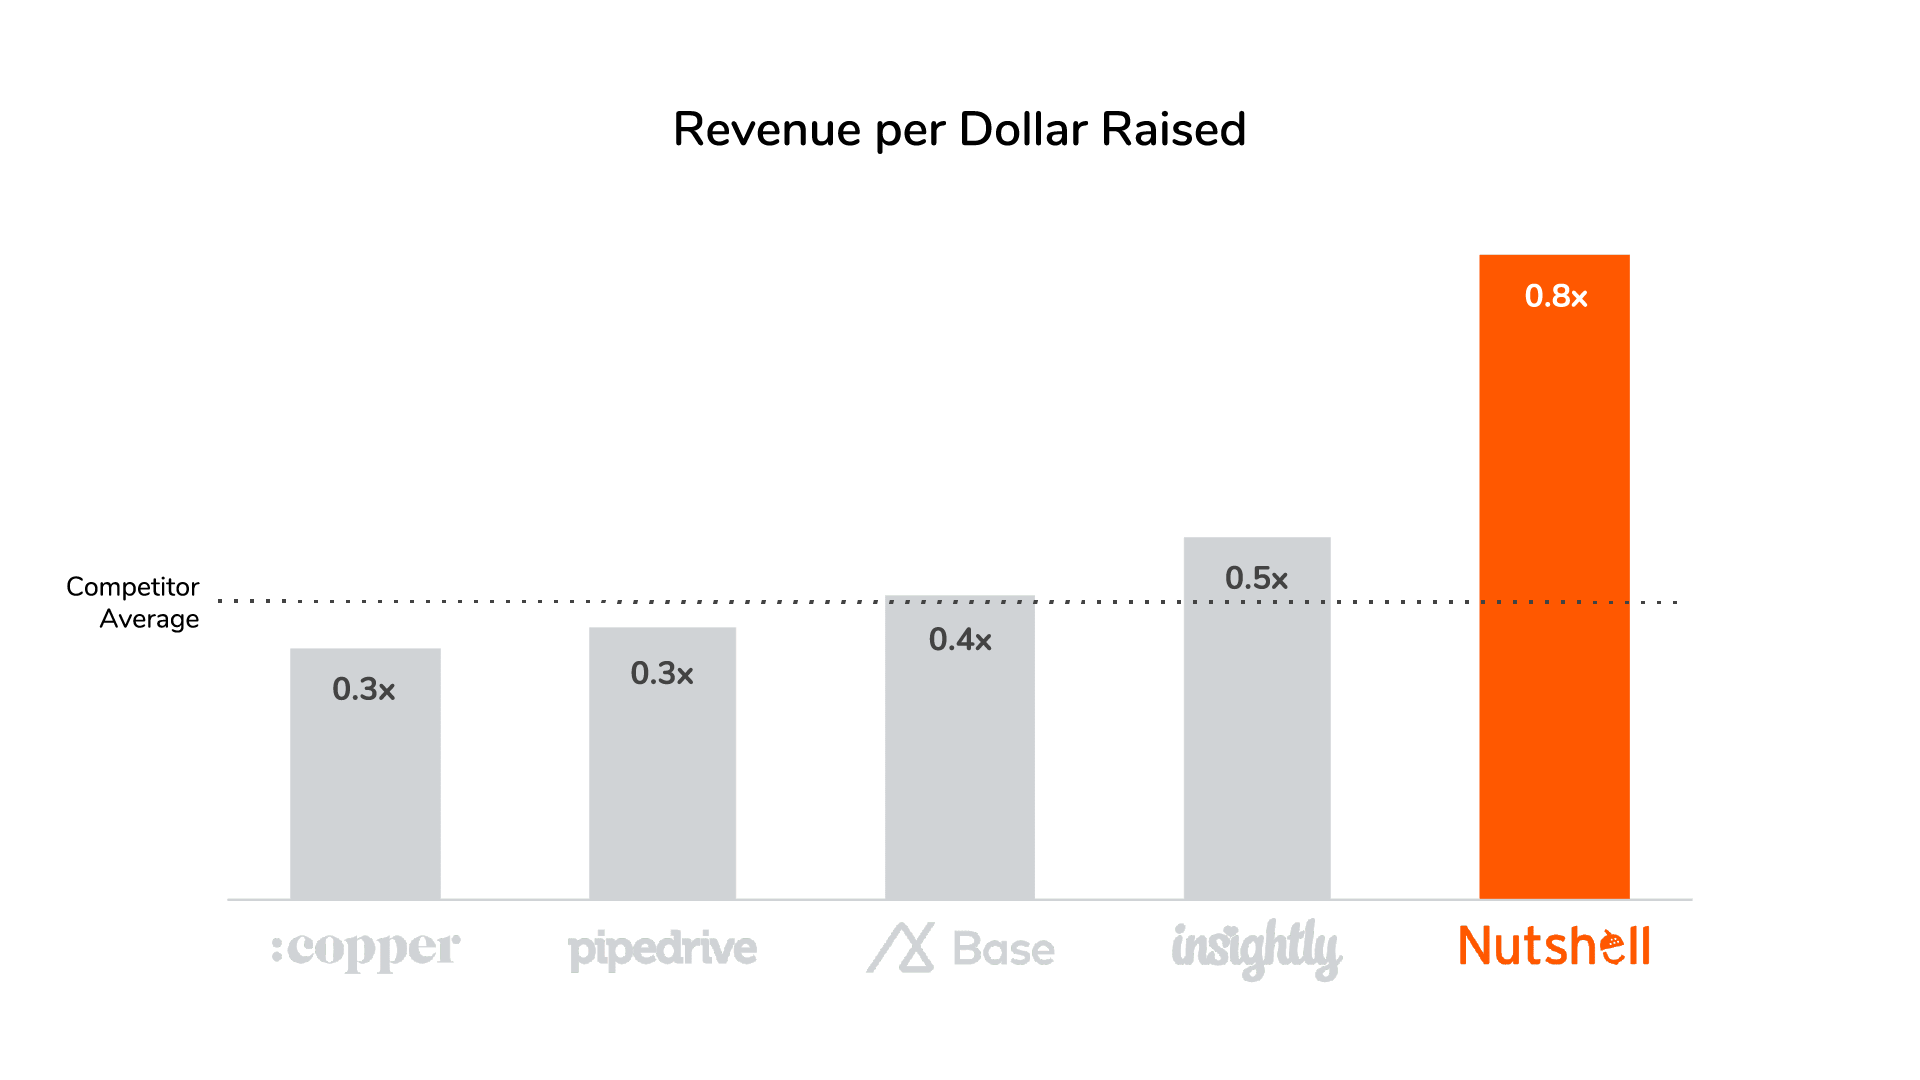 Nutshell revenue per dollar raised vs competitors